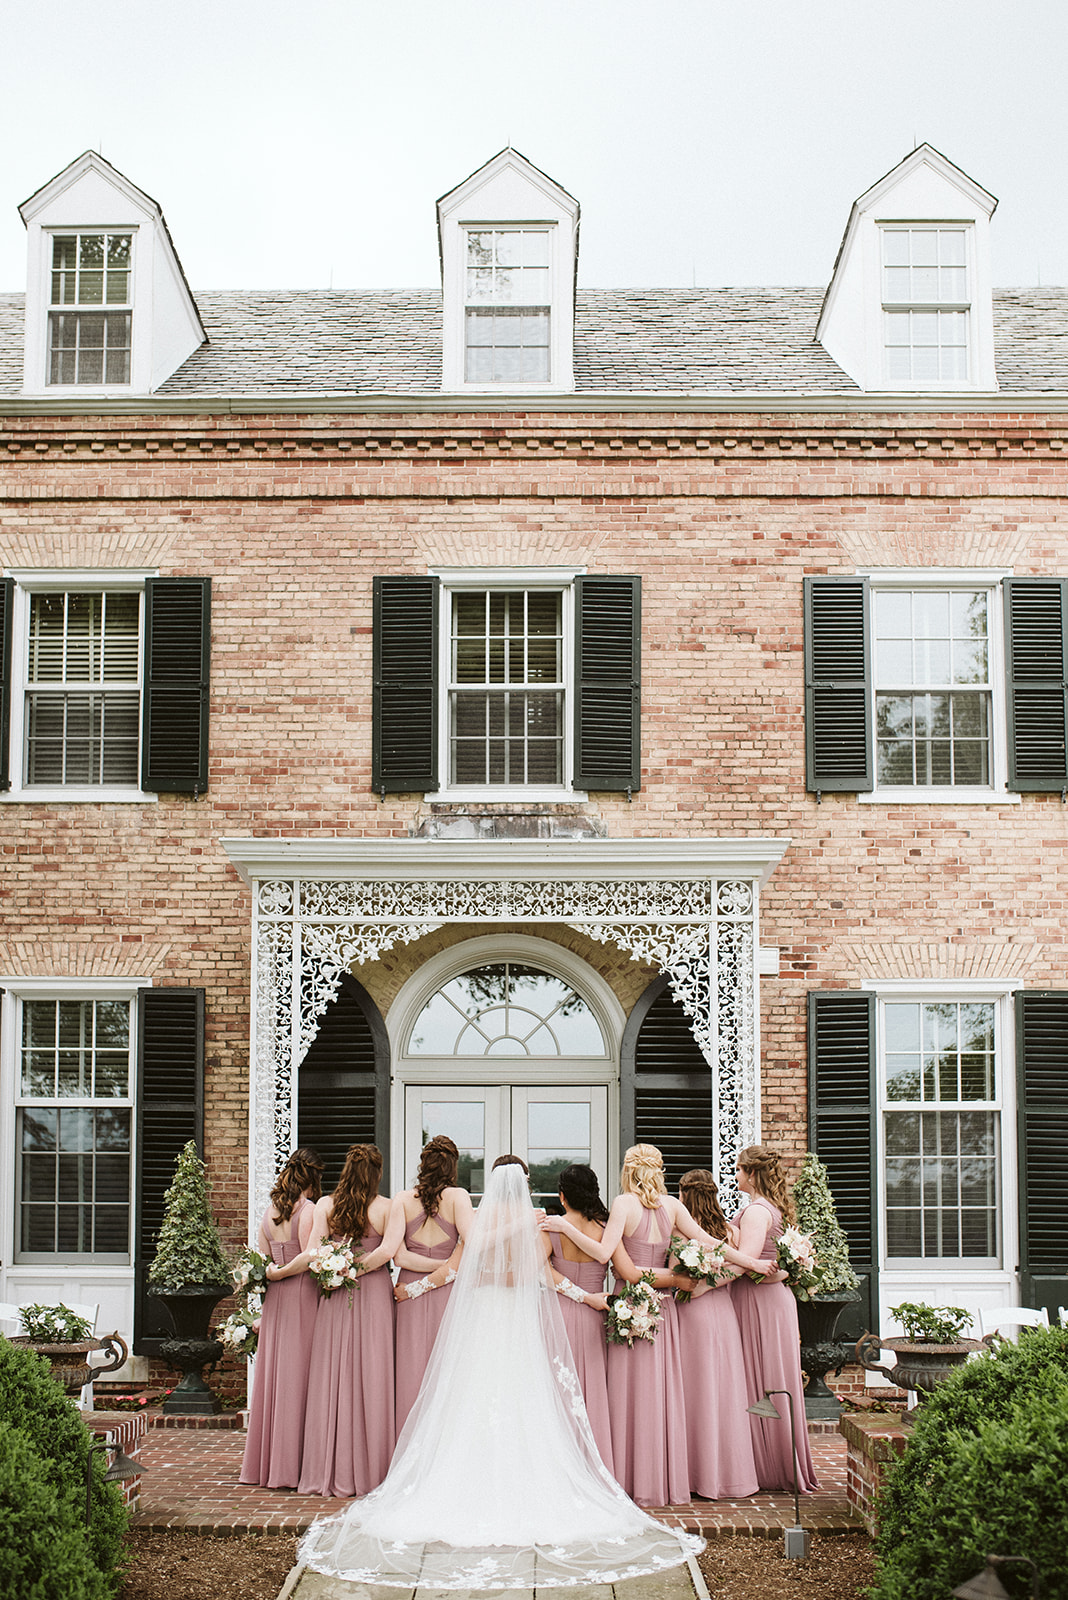 Mauve bridesmaids dresses standing in front of the mansion at Drumore Estate.